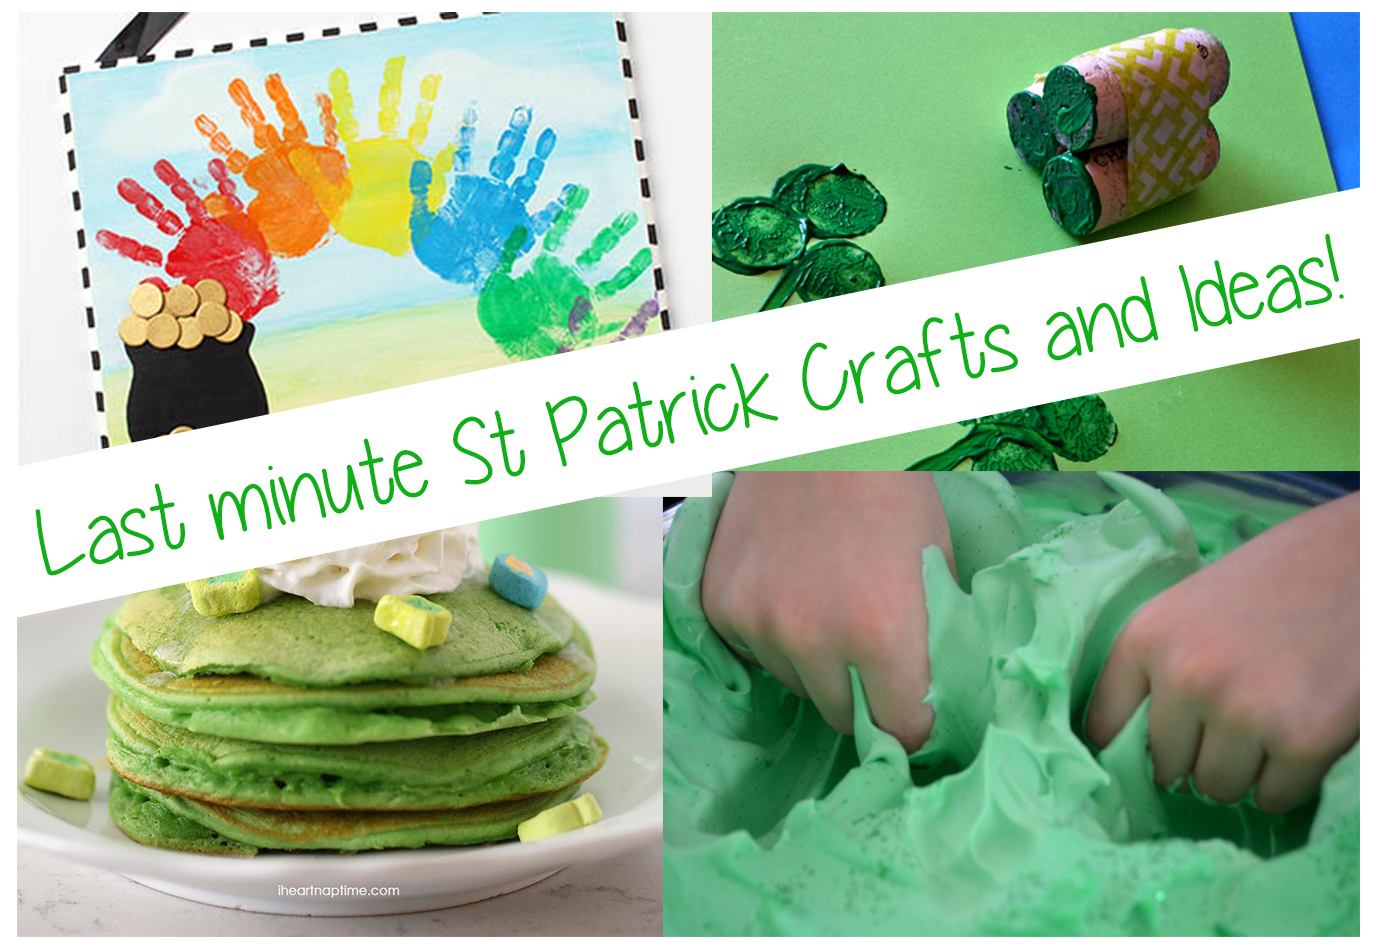 10 St Patrick day Festive Ideas and Crafts!